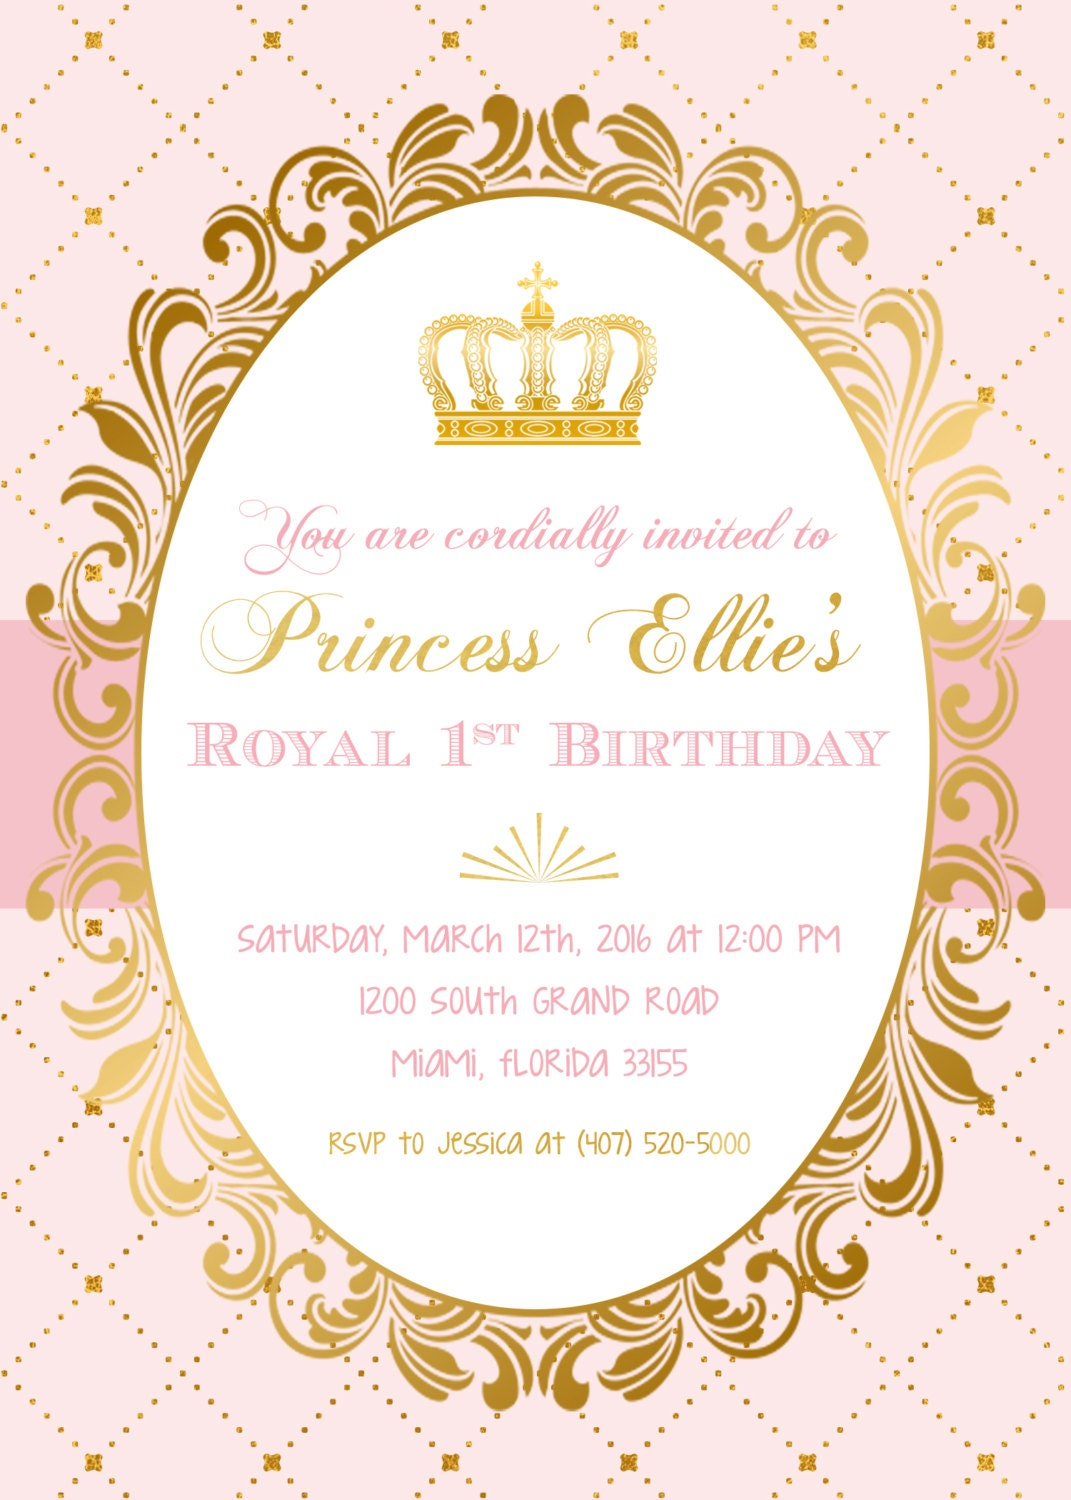 Party Invitation Blush Pink Gold Foil Princess Crown First 1st Royal Birthday Printed Or Printable Invite Gallery Photo